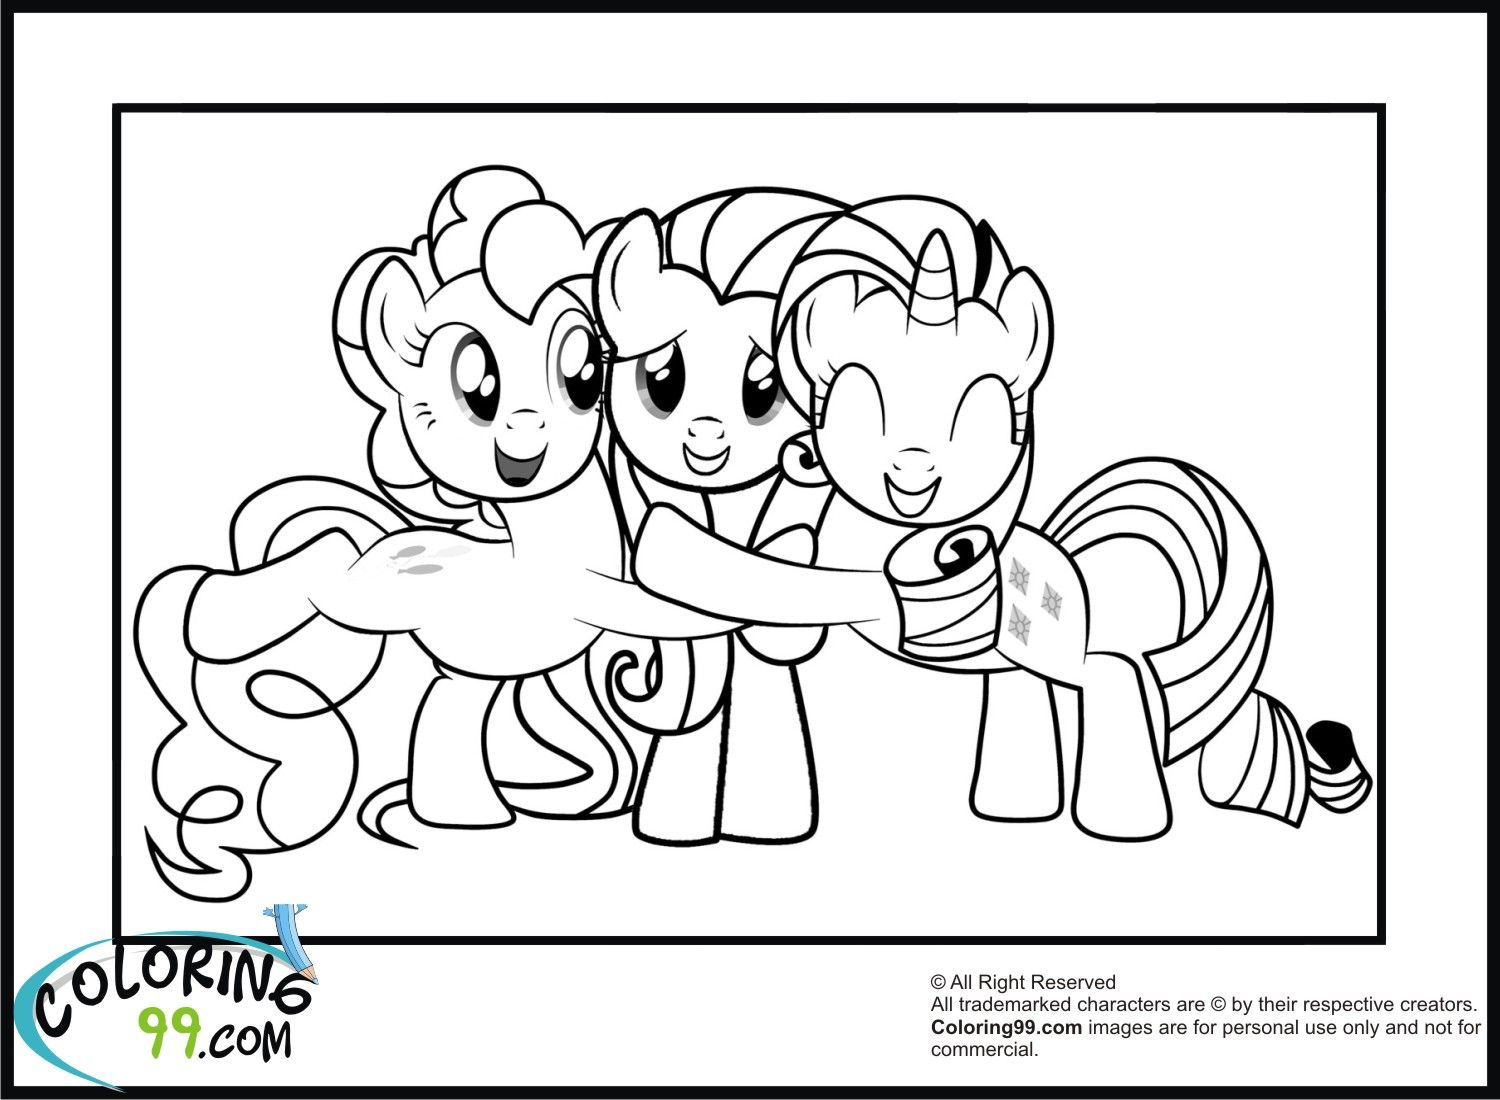 Rarity Fluttershy And Pinkie Pie My Little Pony Coloring Coloring Pages My Little Pony